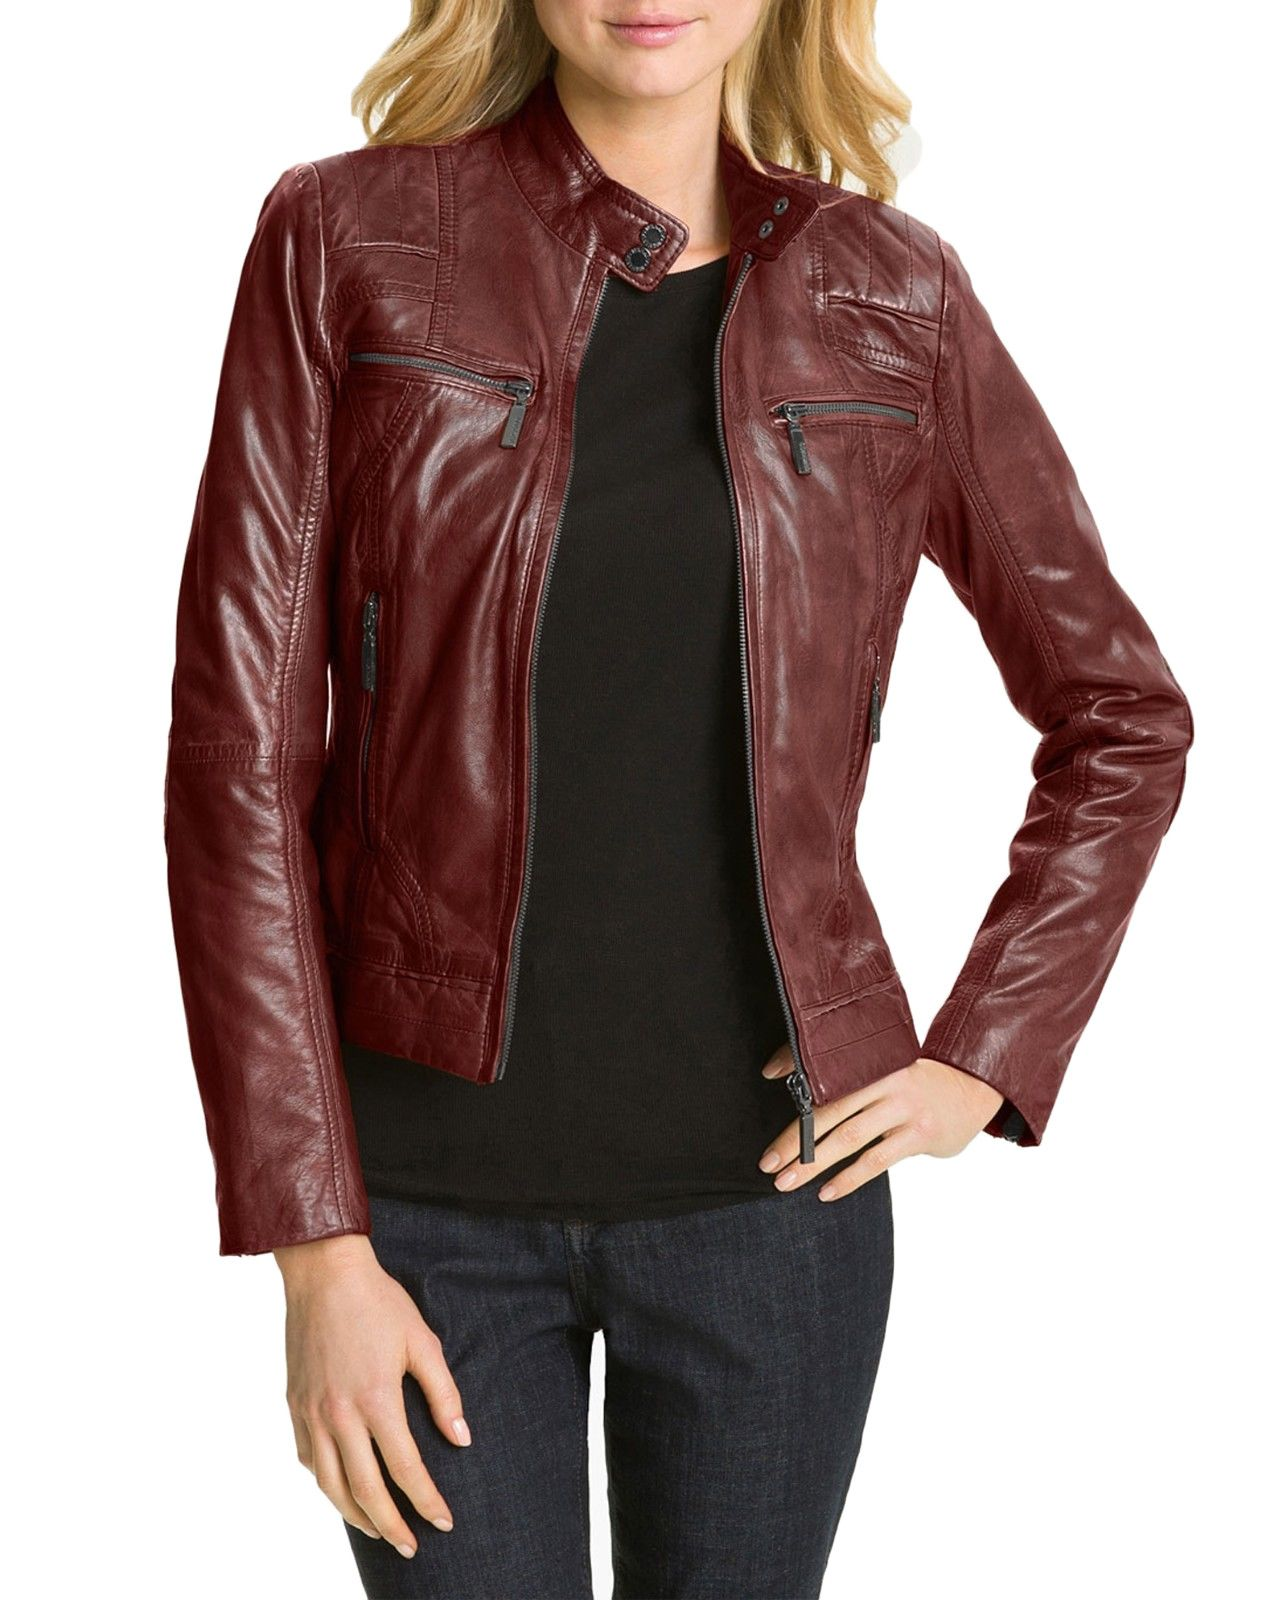 New Hollywood Collection Soft Leather Biker Burgundy